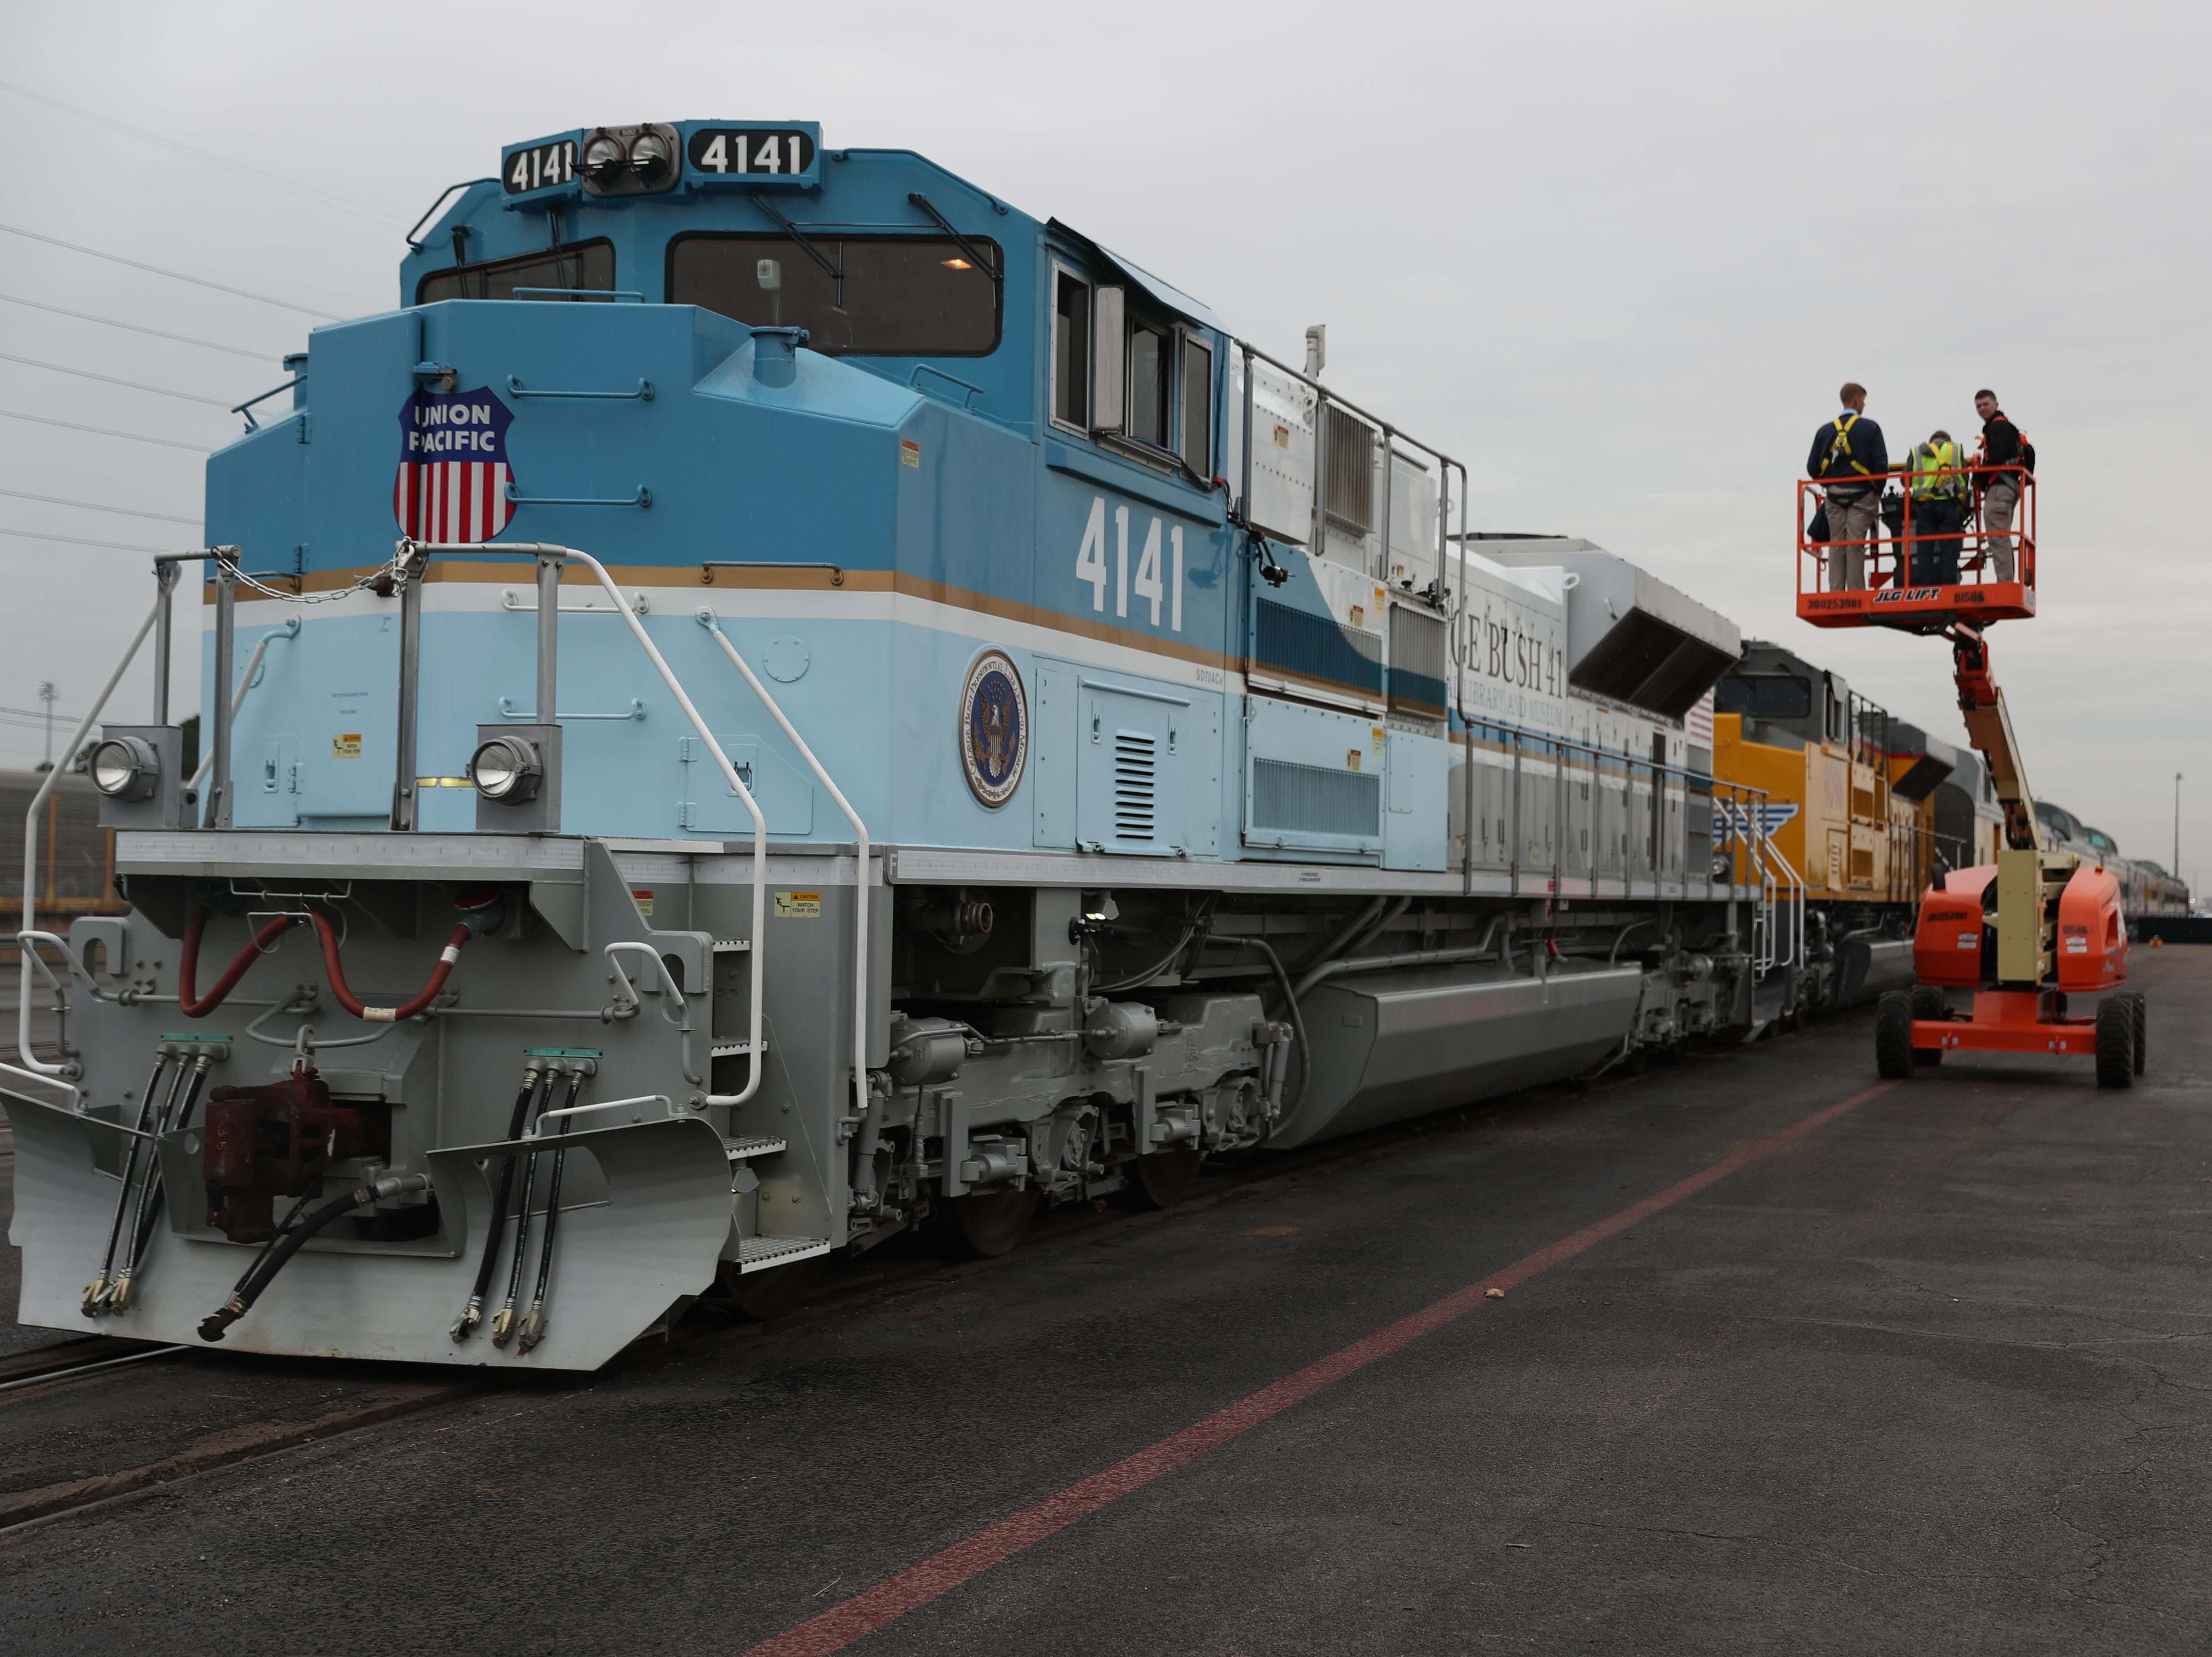 A Union Pacific locomotive, painted to look like Air Force One,  will carry former President George H.W. Bush to his resting place in College Station, Texas waits at the station on Dec. 6, 2018 in Spring, Texas.